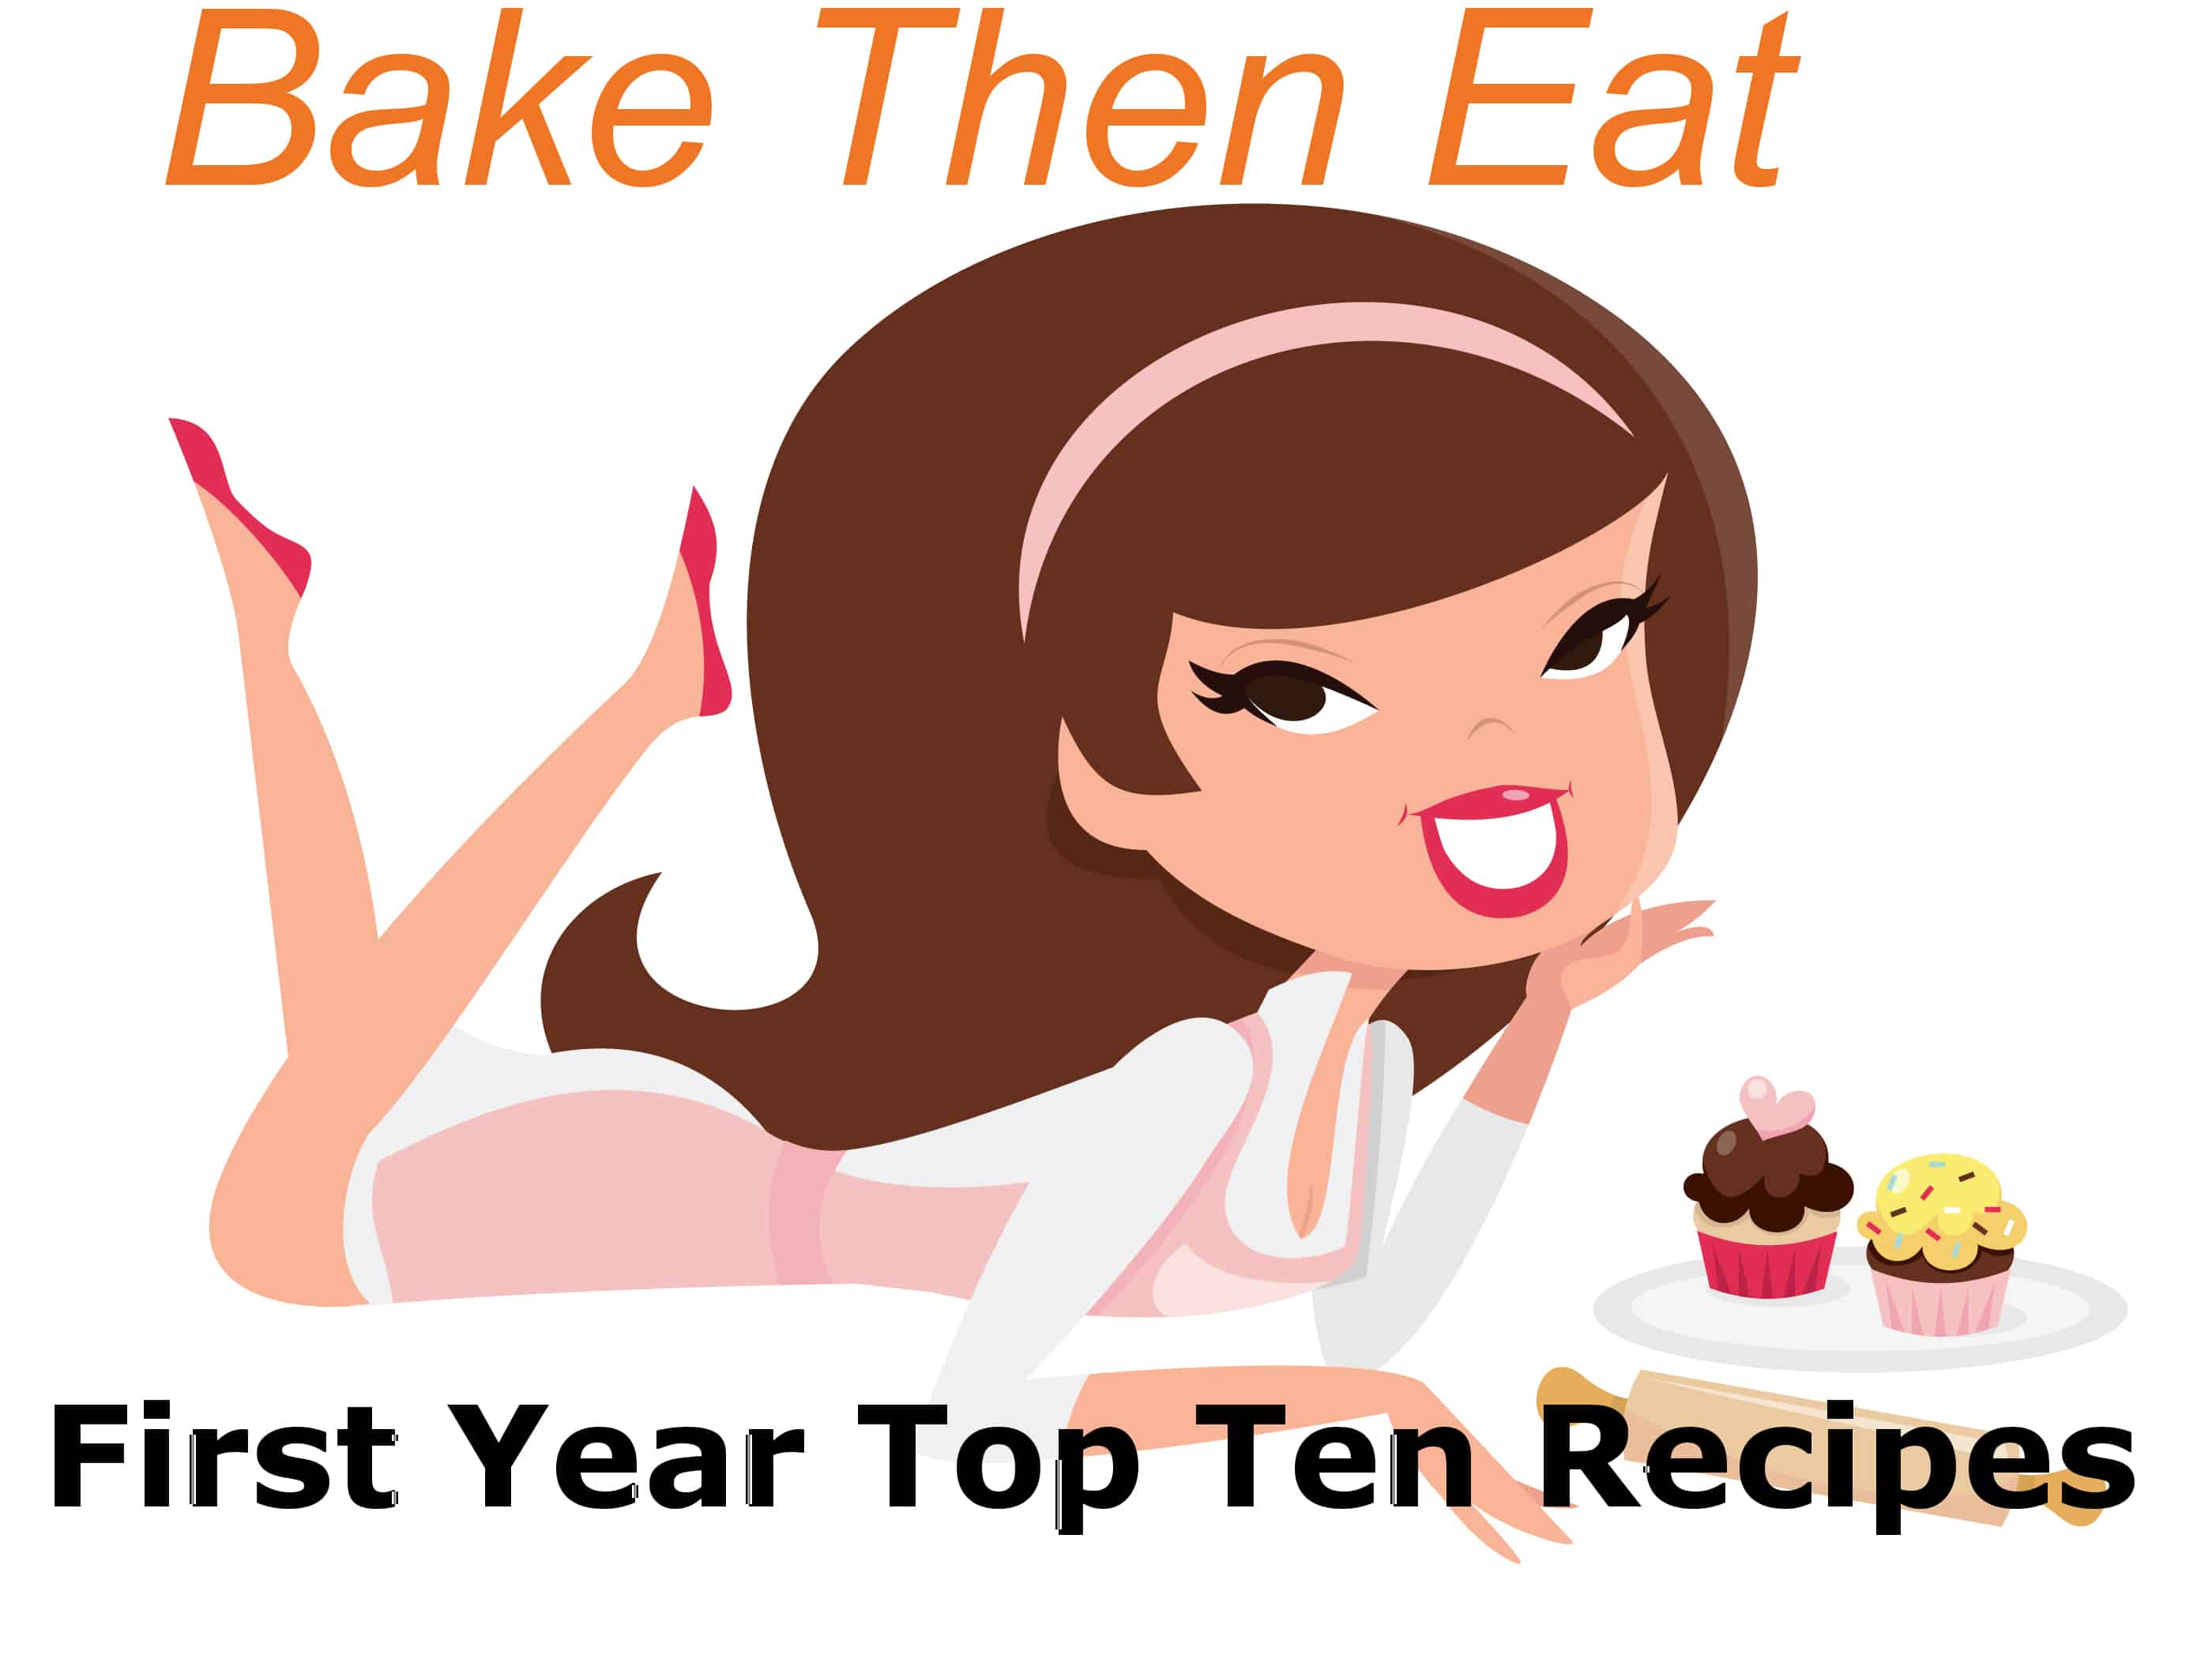 Bake Then Eat's Top 10 Post